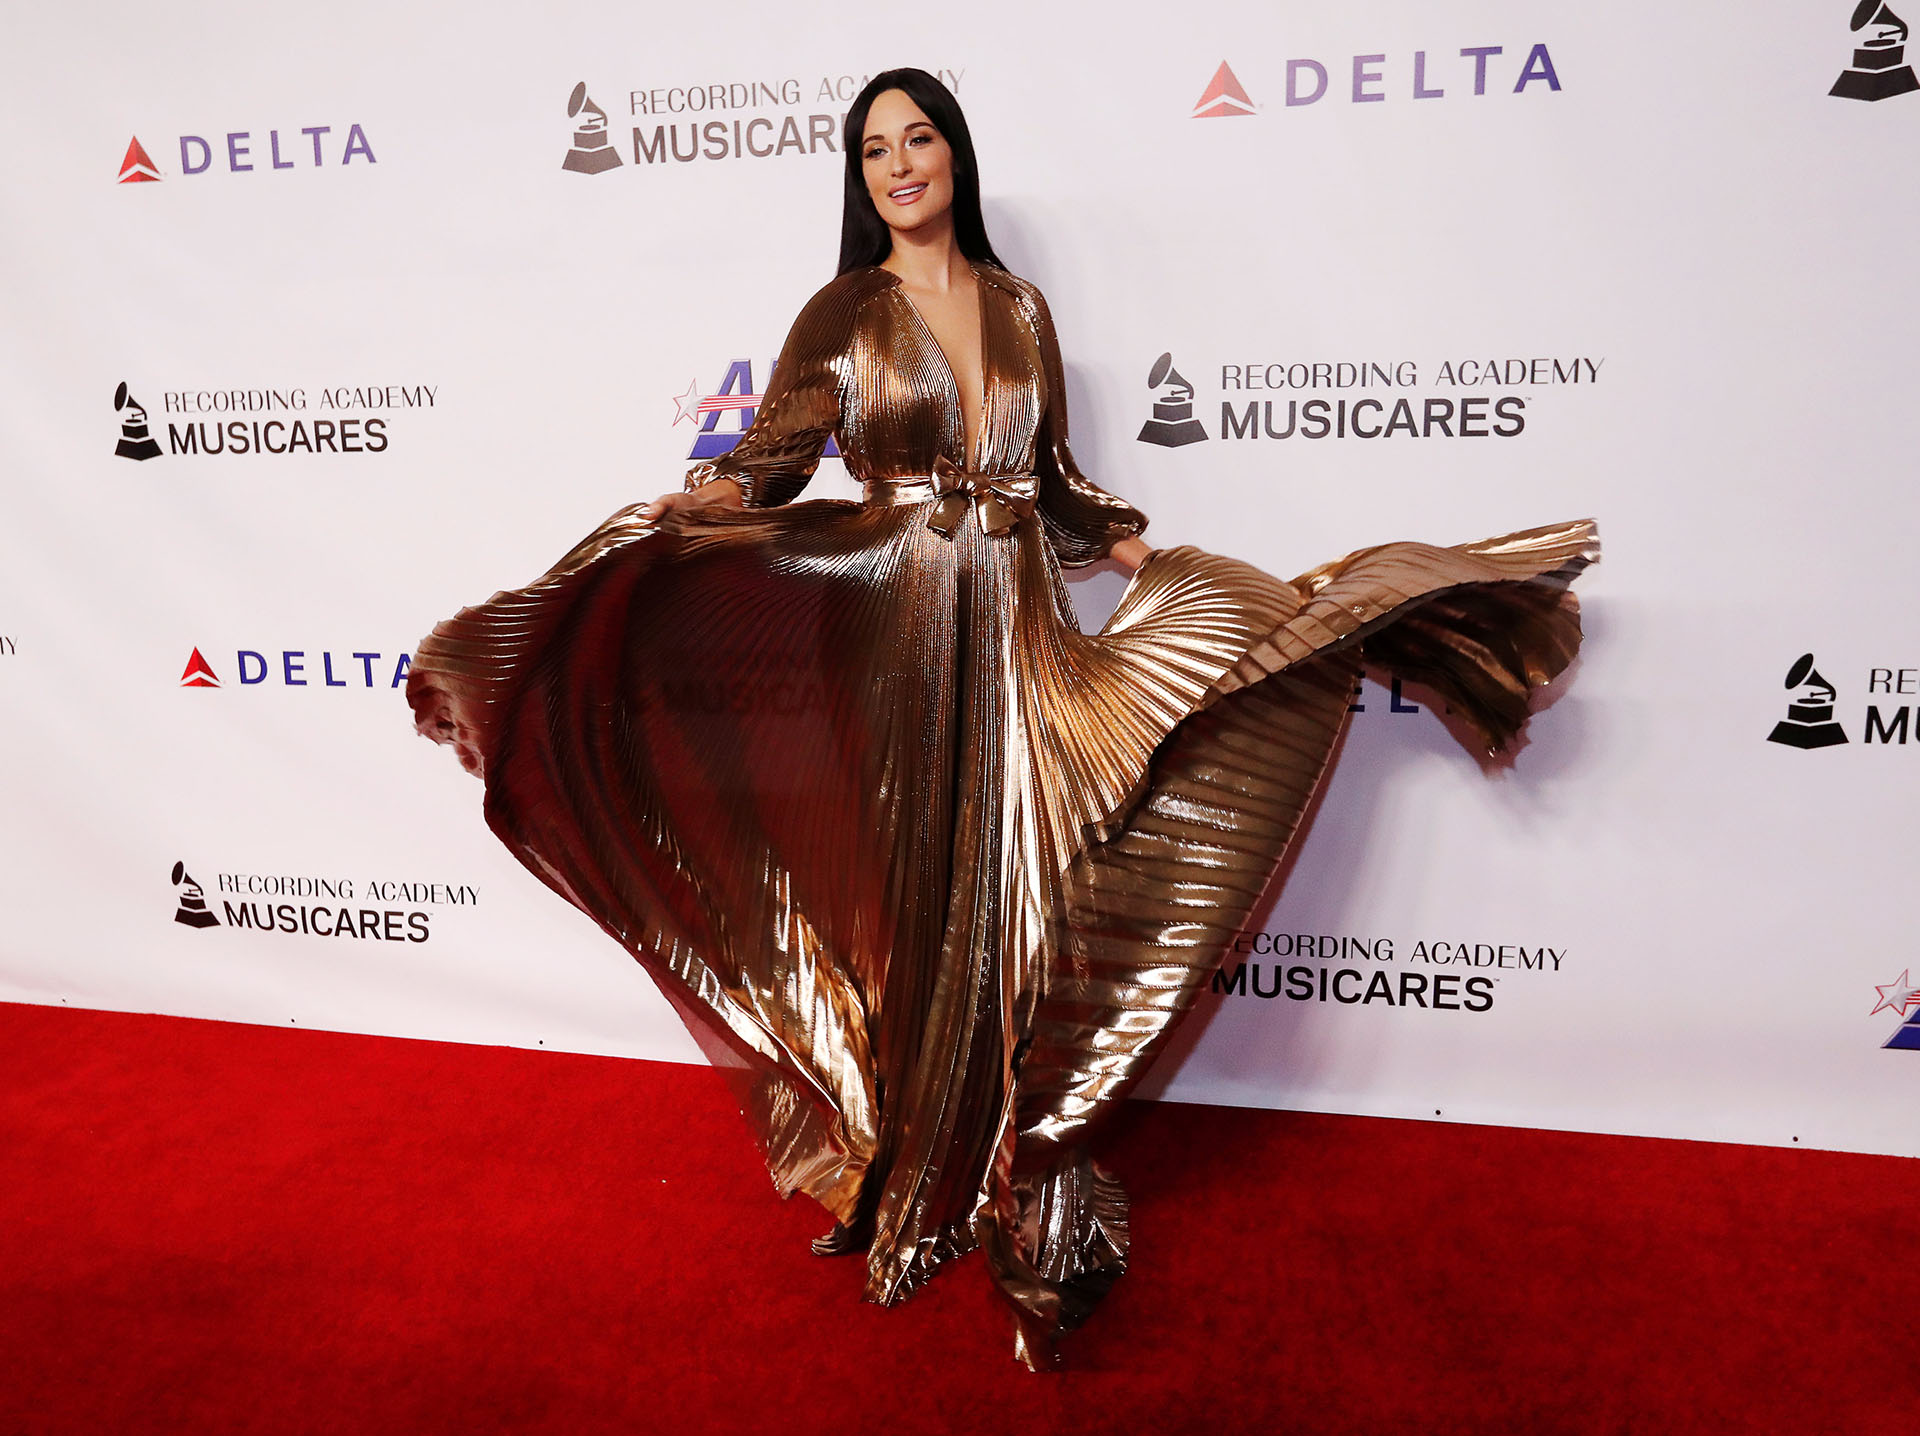 El espectacular vestido de Kacey Musgraves /// Fotos: Reuters